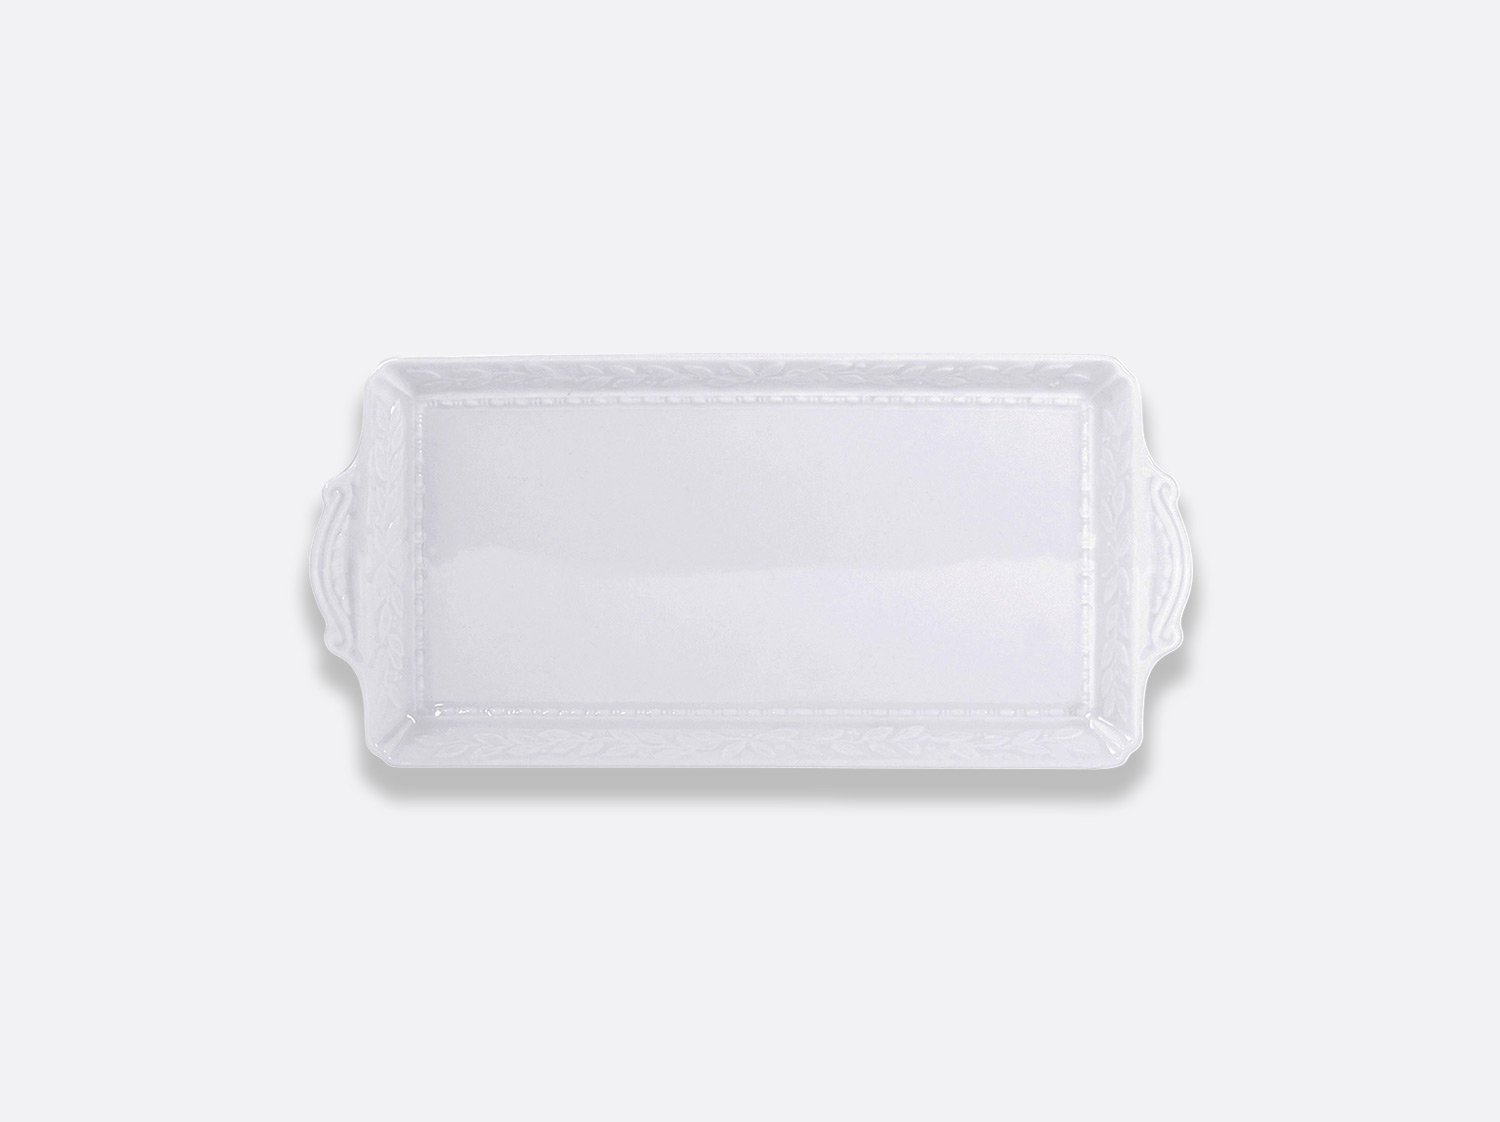 China Valet tray - small 27 cm x 13 cm of the collection Louvre | Bernardaud